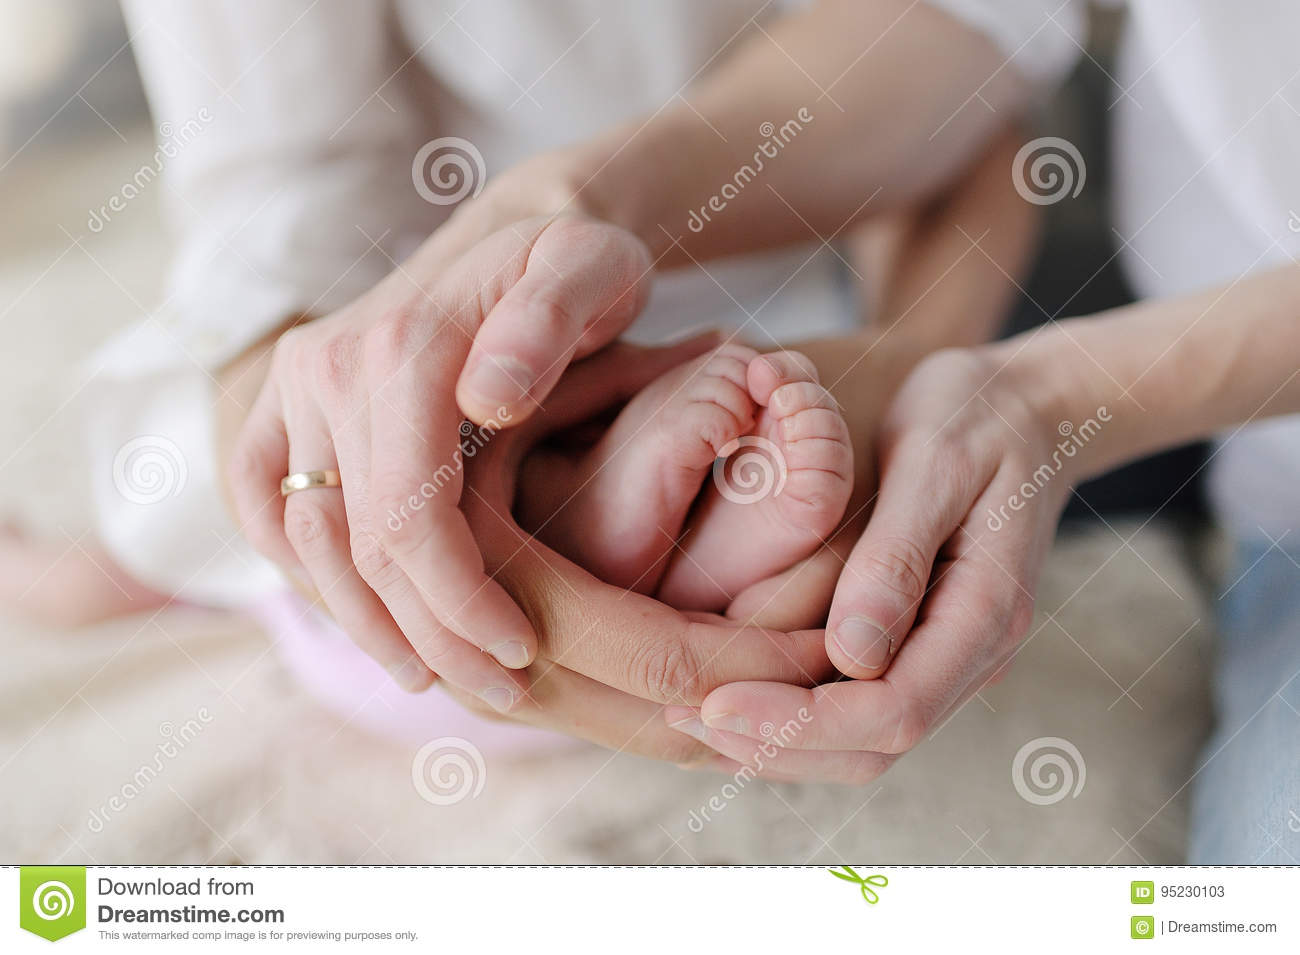 Mom Dad Hands Baby Stock Images Download 2293 Royalty Free Photos